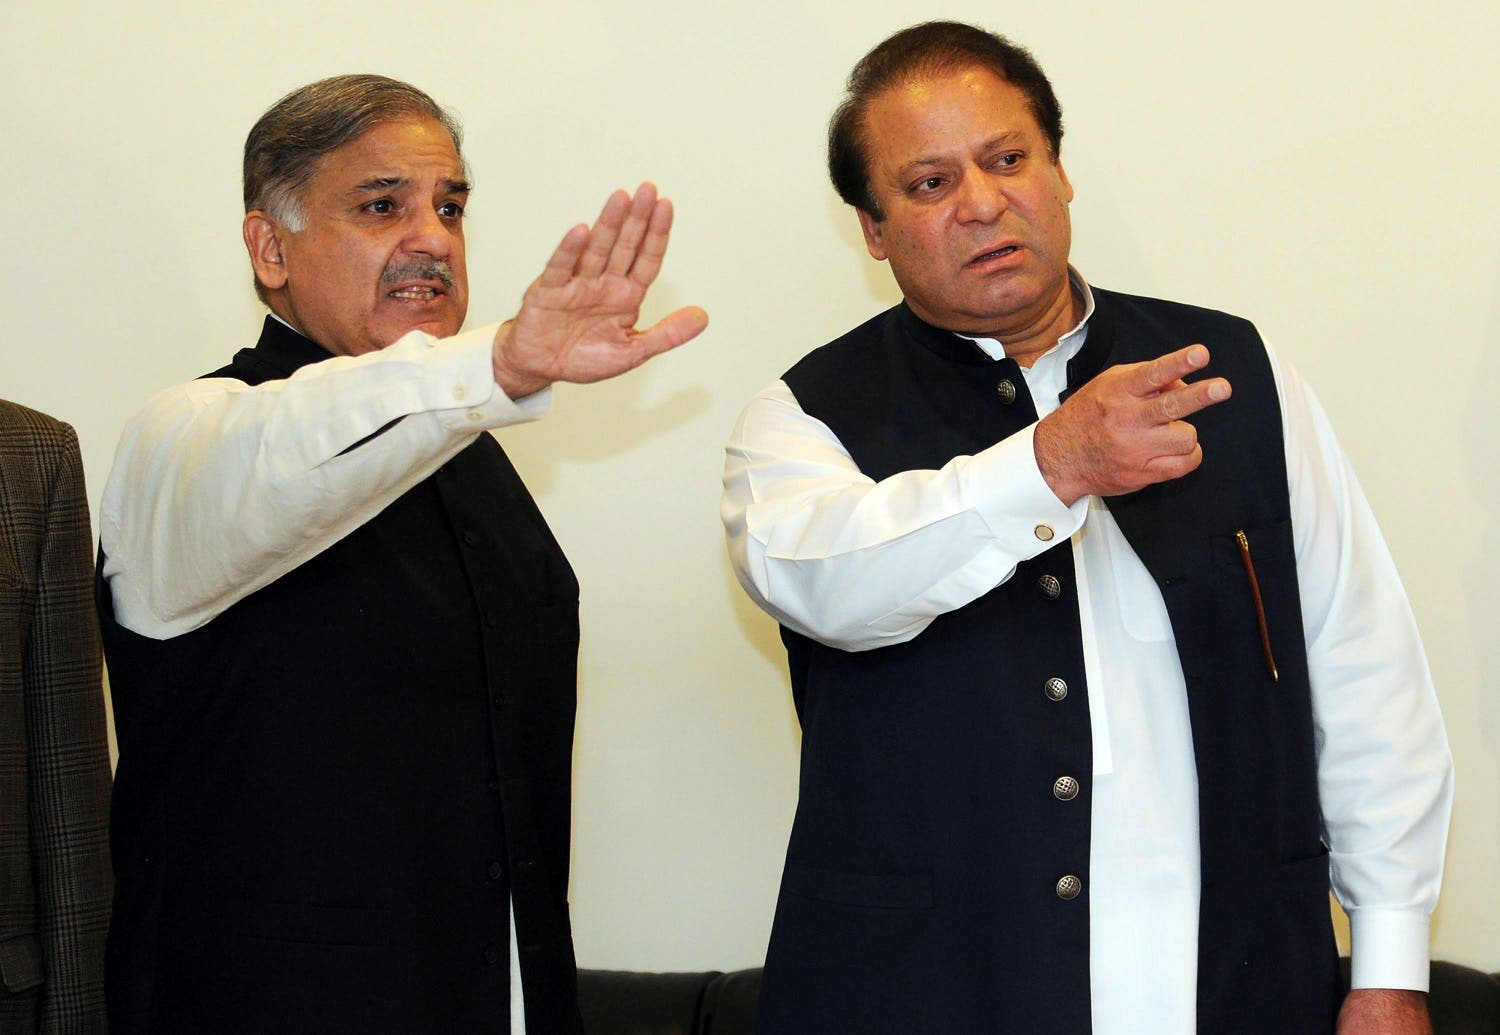 This file photo taken on February 25, 2009 shows Nawaz Sharif with his brother Shahbaz Sharif in Lahore. (AFP)